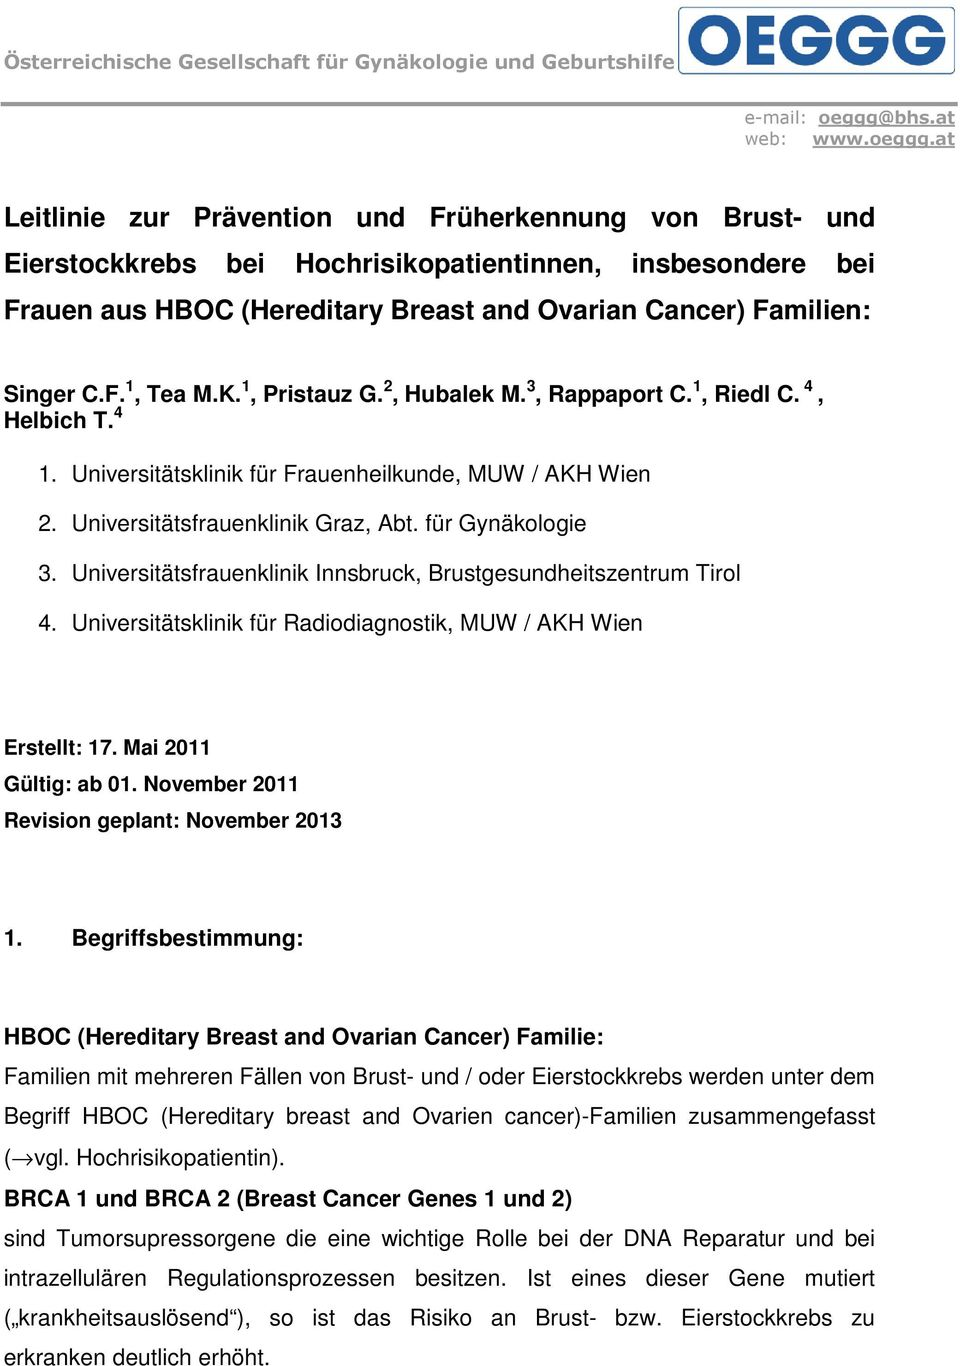 at Leitlinie zur Prävention und Früherkennung von Brust- und Eierstockkrebs bei Hochrisikopatientinnen, insbesondere bei Frauen aus HBOC (Hereditary Breast and Ovarian Cancer) Familien: Singer C.F. 1, Tea M.